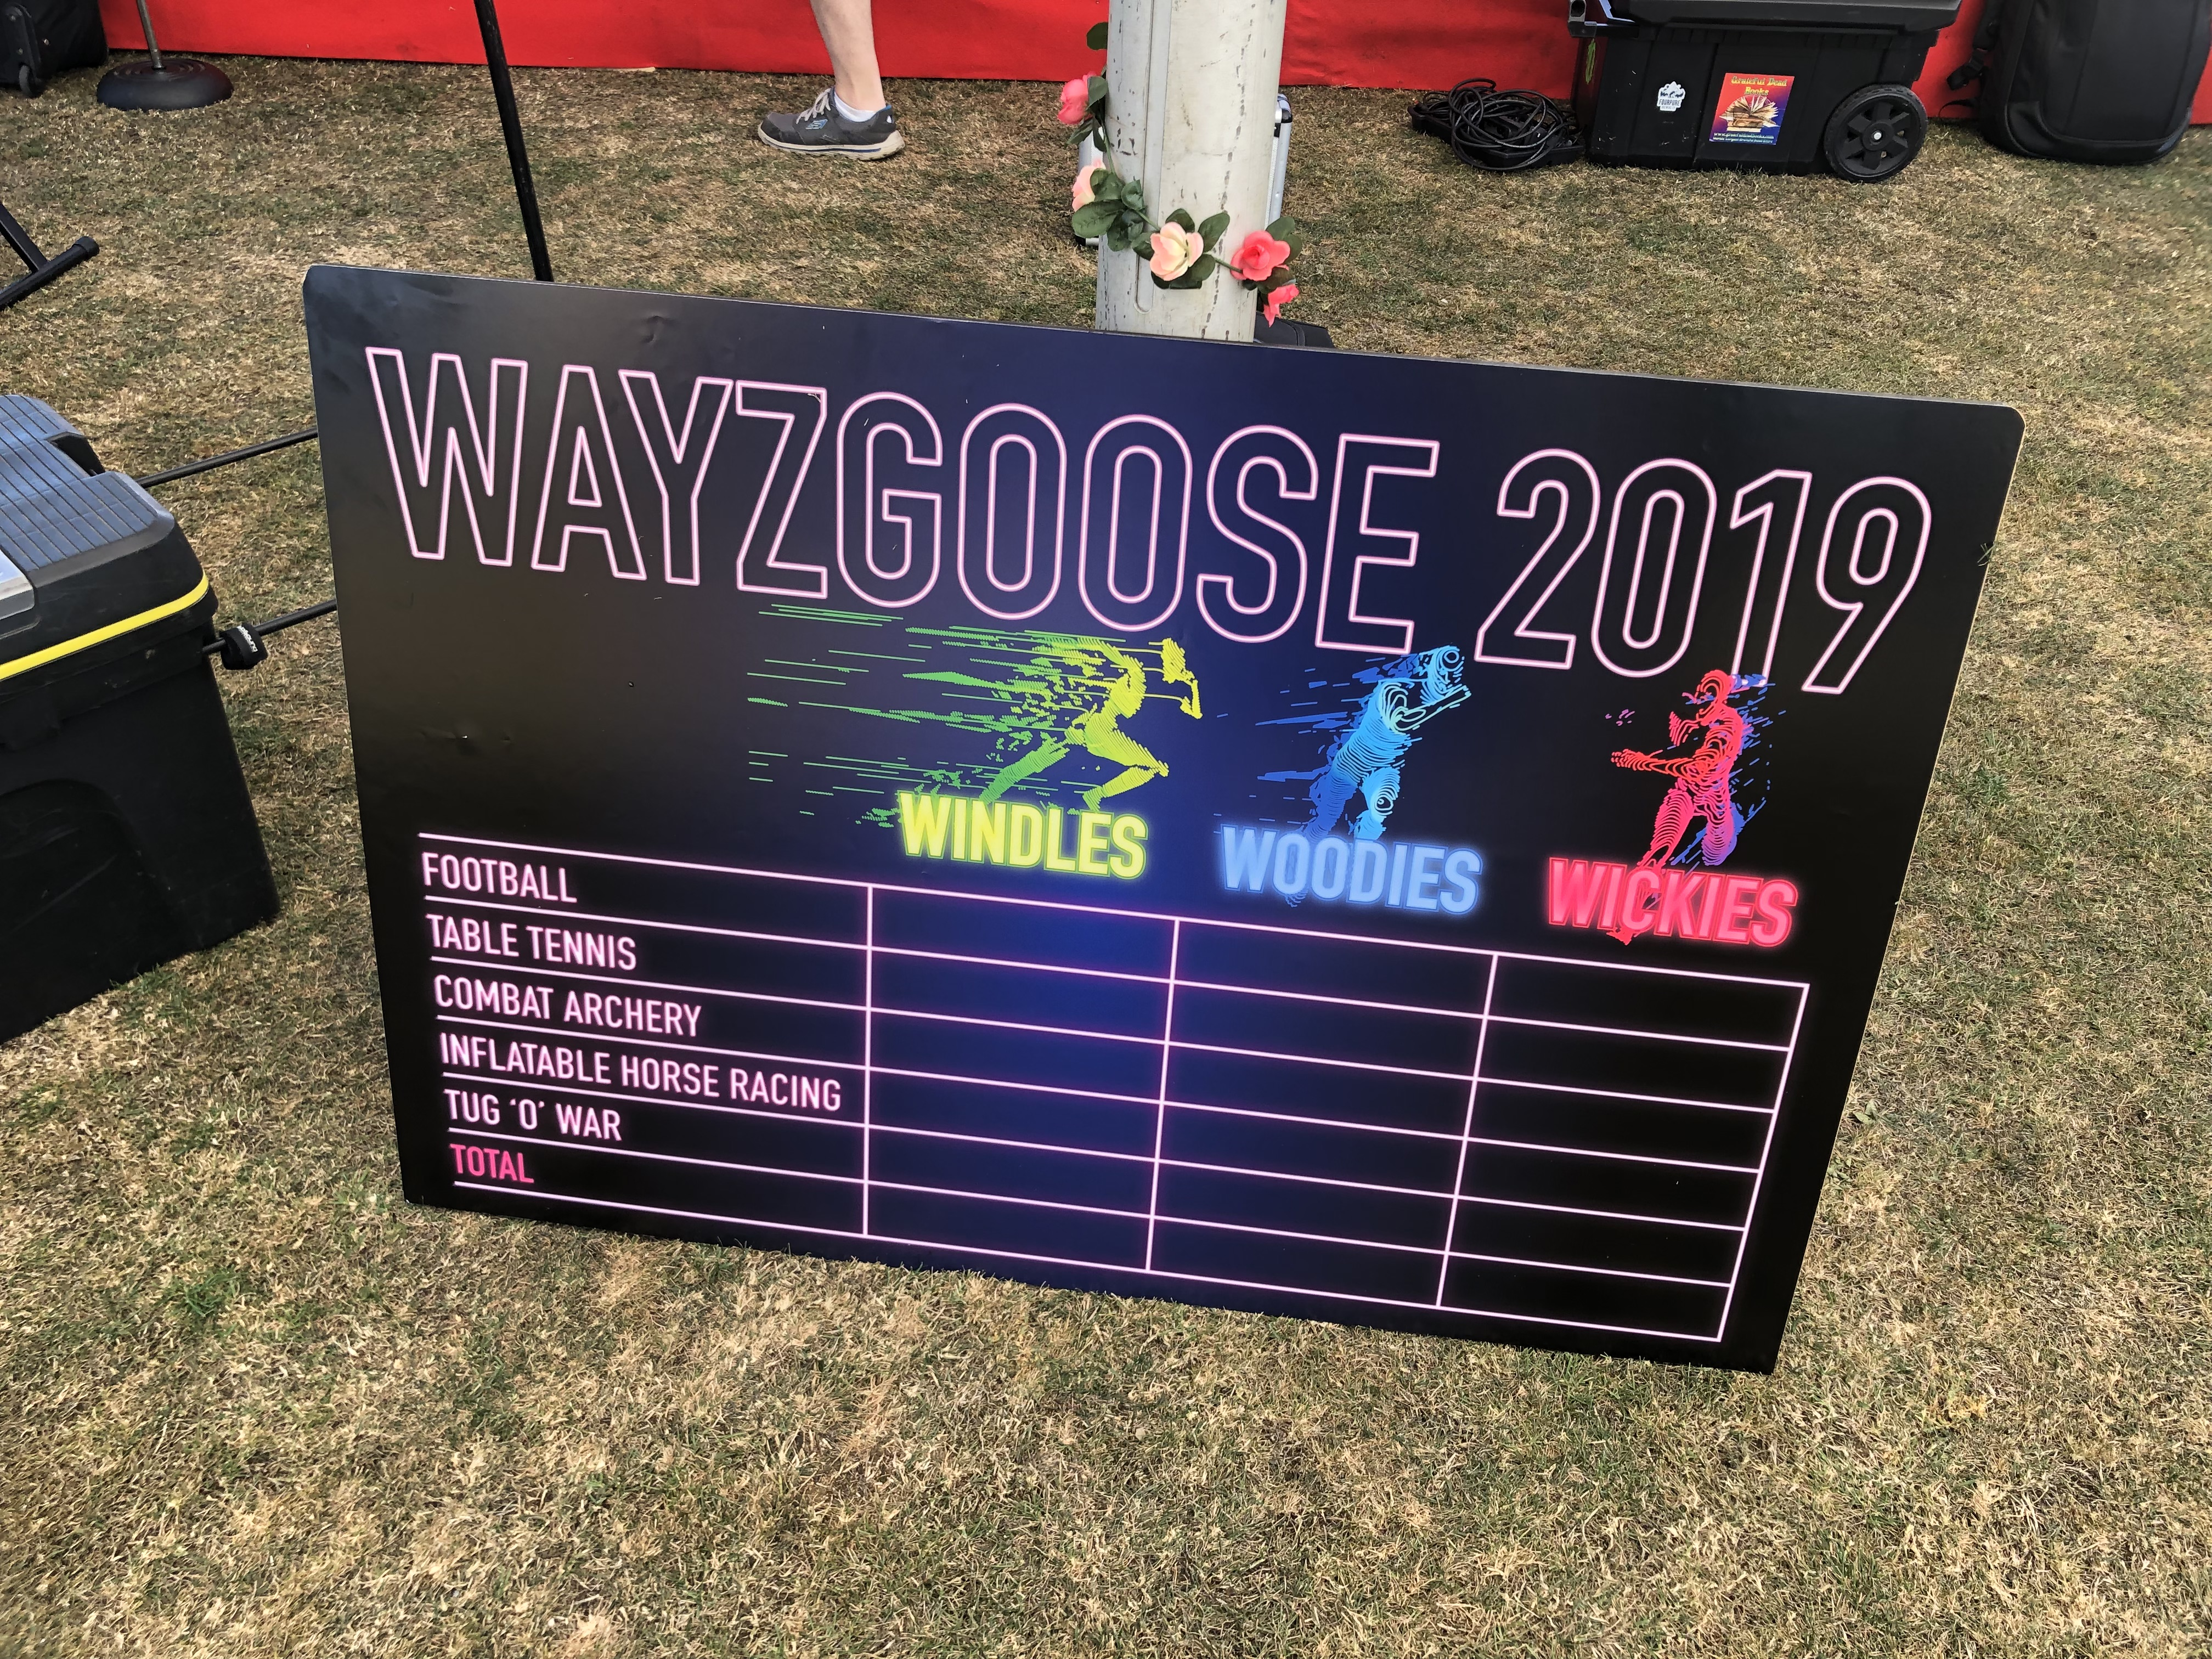 Above: The Wayzgoose competition involved a number of events which the Windles, Woodies and Wickies teams battled it out over.